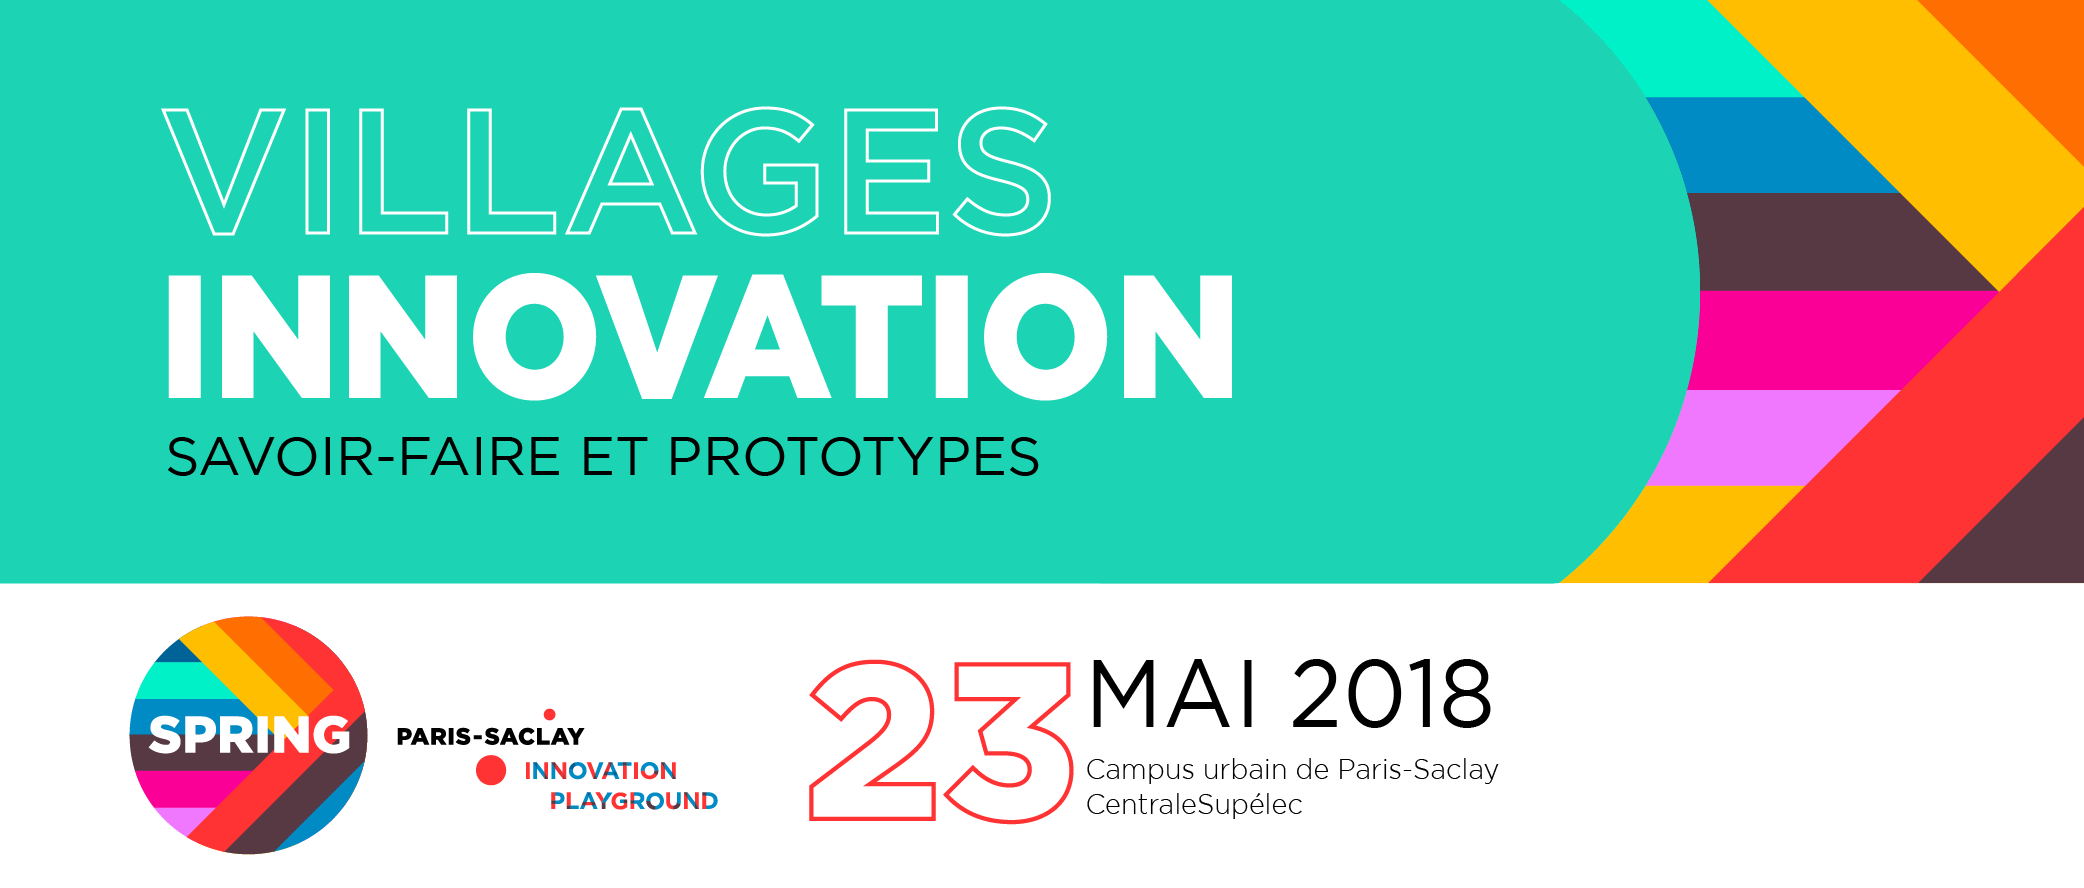 Villages Innovation PARIS-SACLAY SPRING